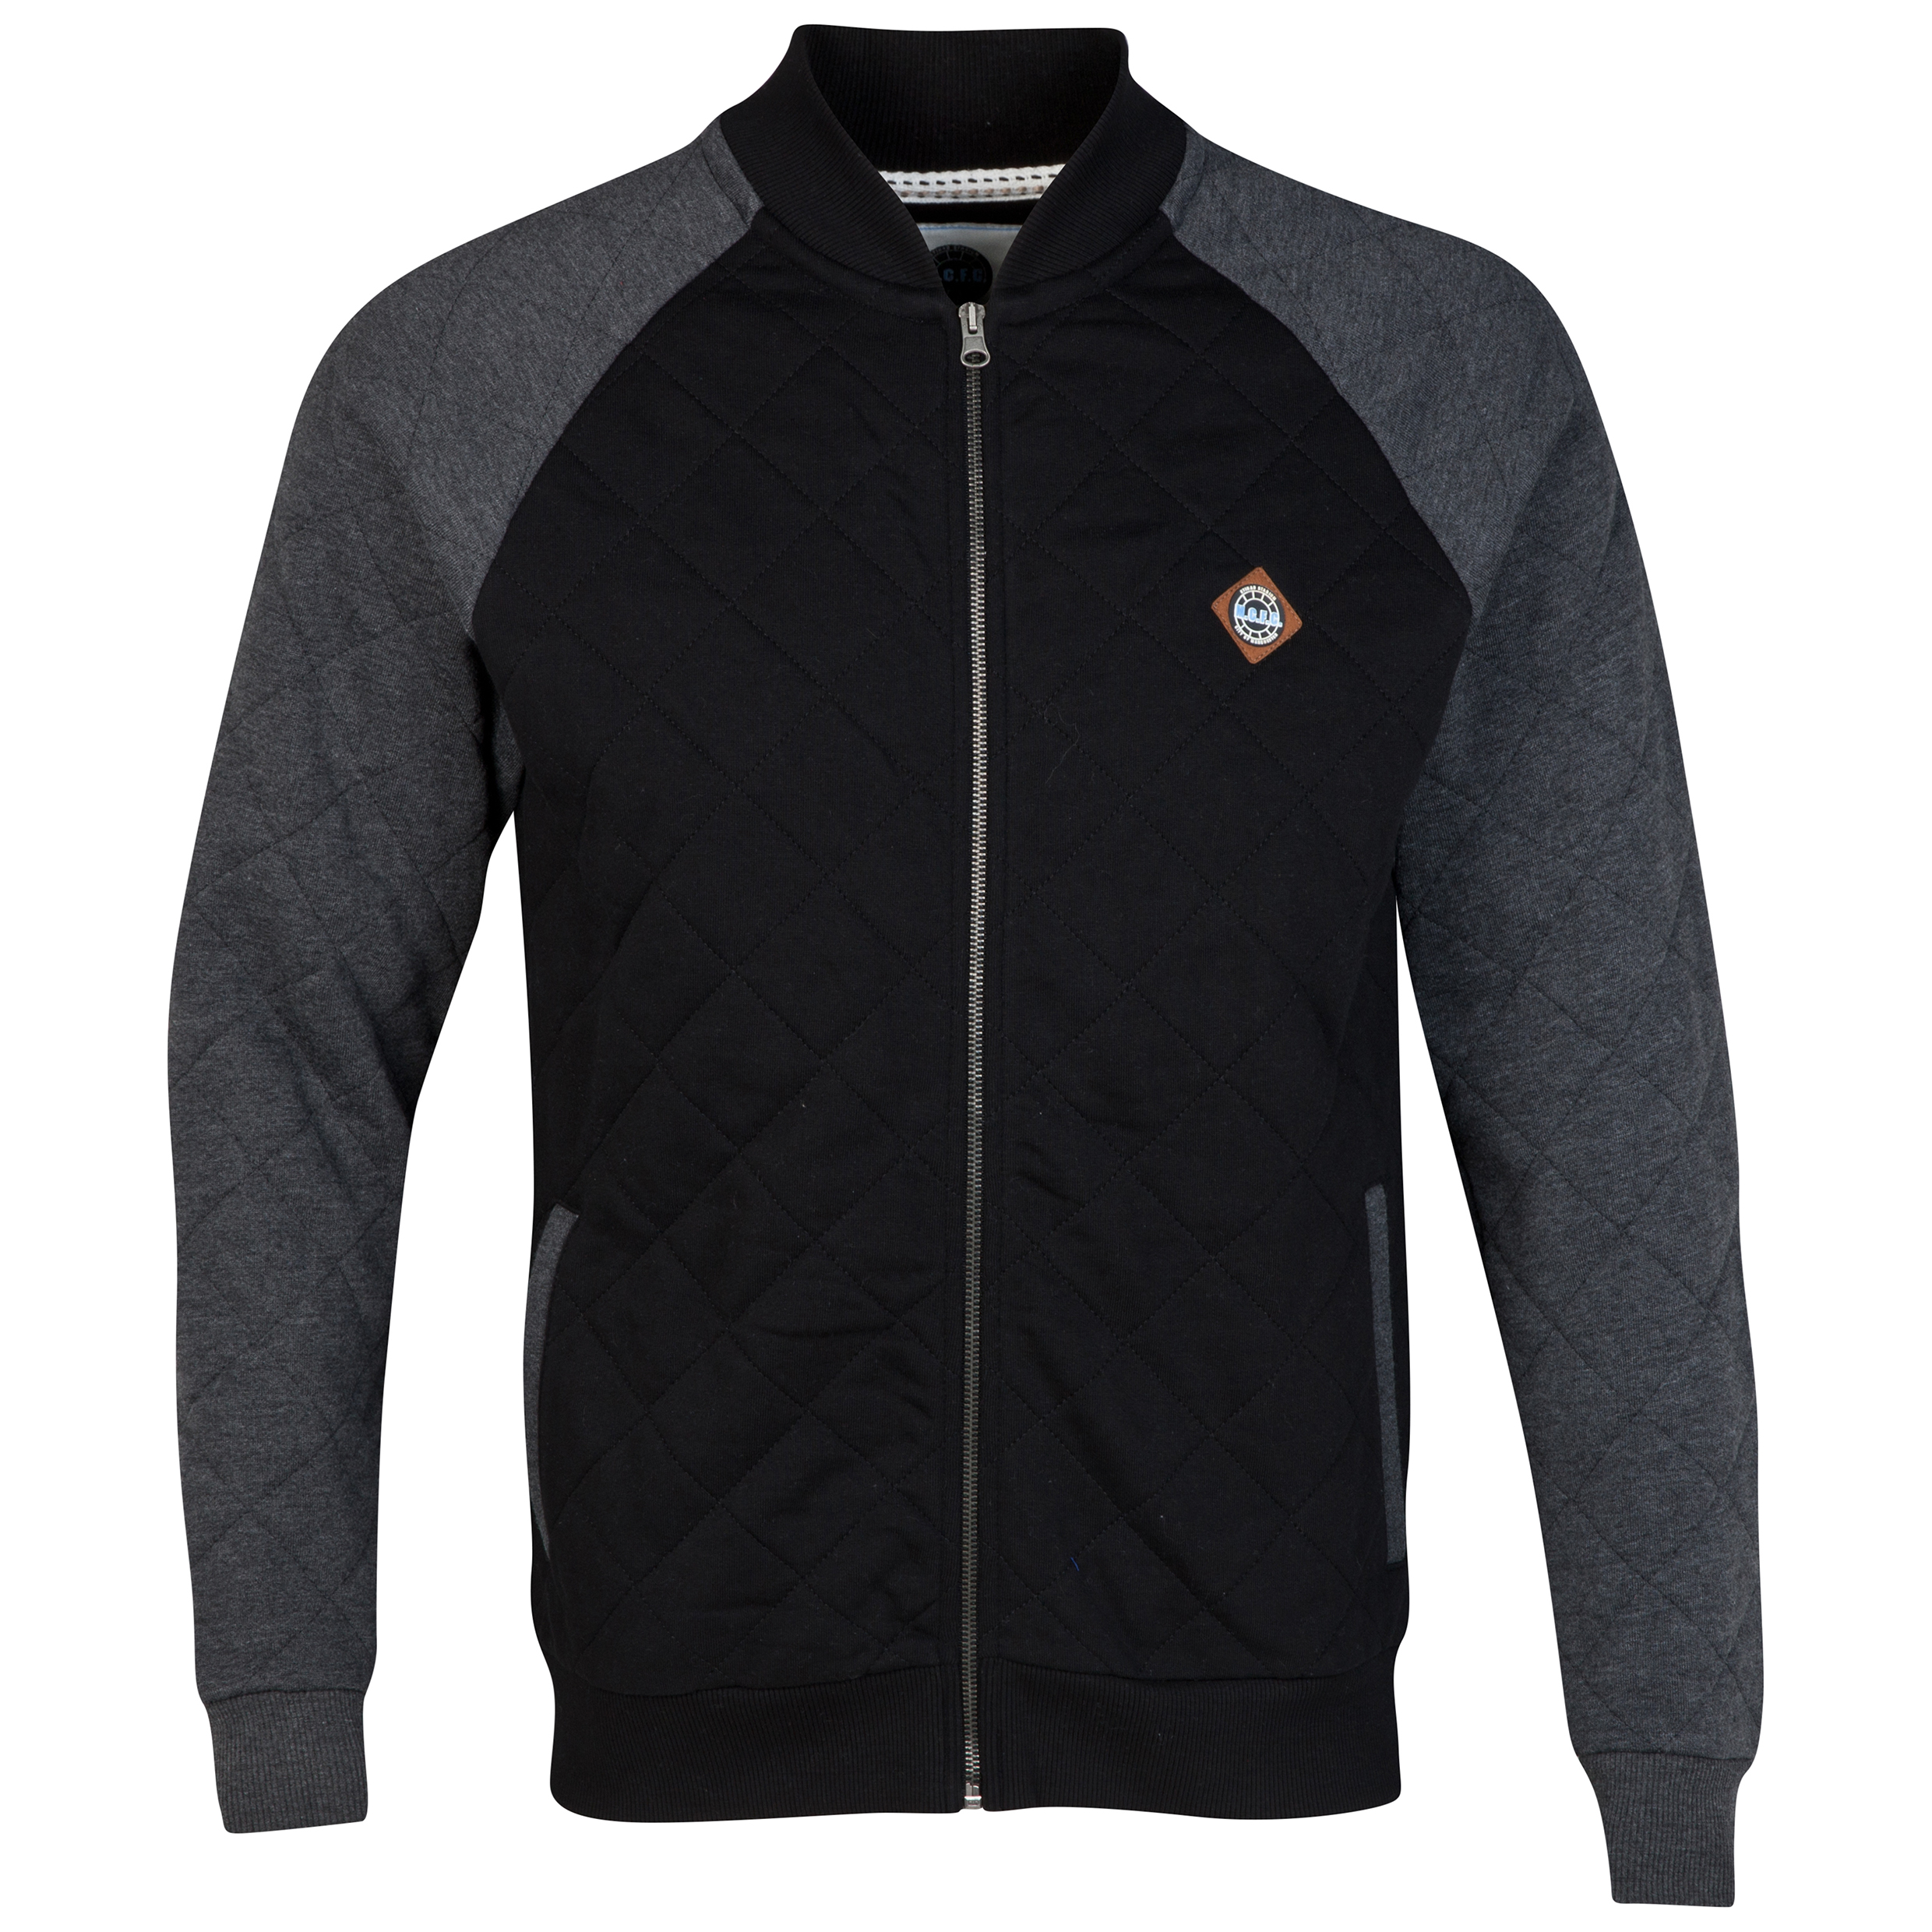 Manchester City Bomber Jacket - Black/Charcoal- Mens